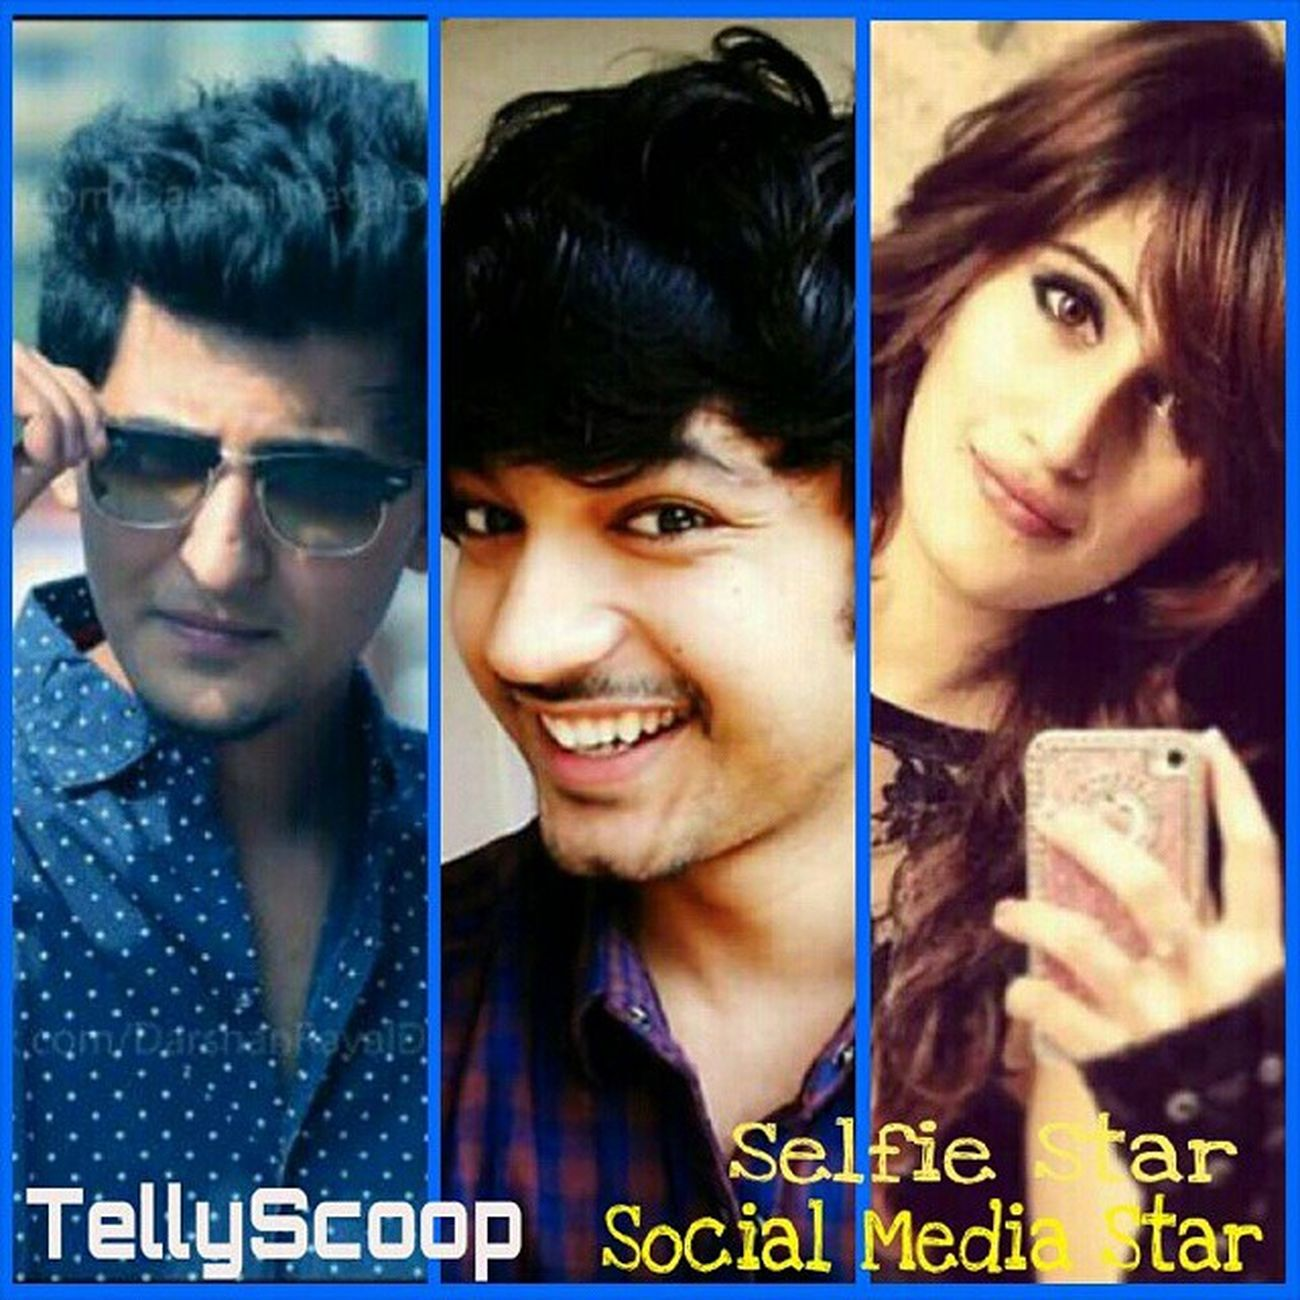 @priya_jalu @Telly_Scoop I want to nominate @darshanravaldz and @mohitgaur7991 for Selfiestar and SocialMediaStar